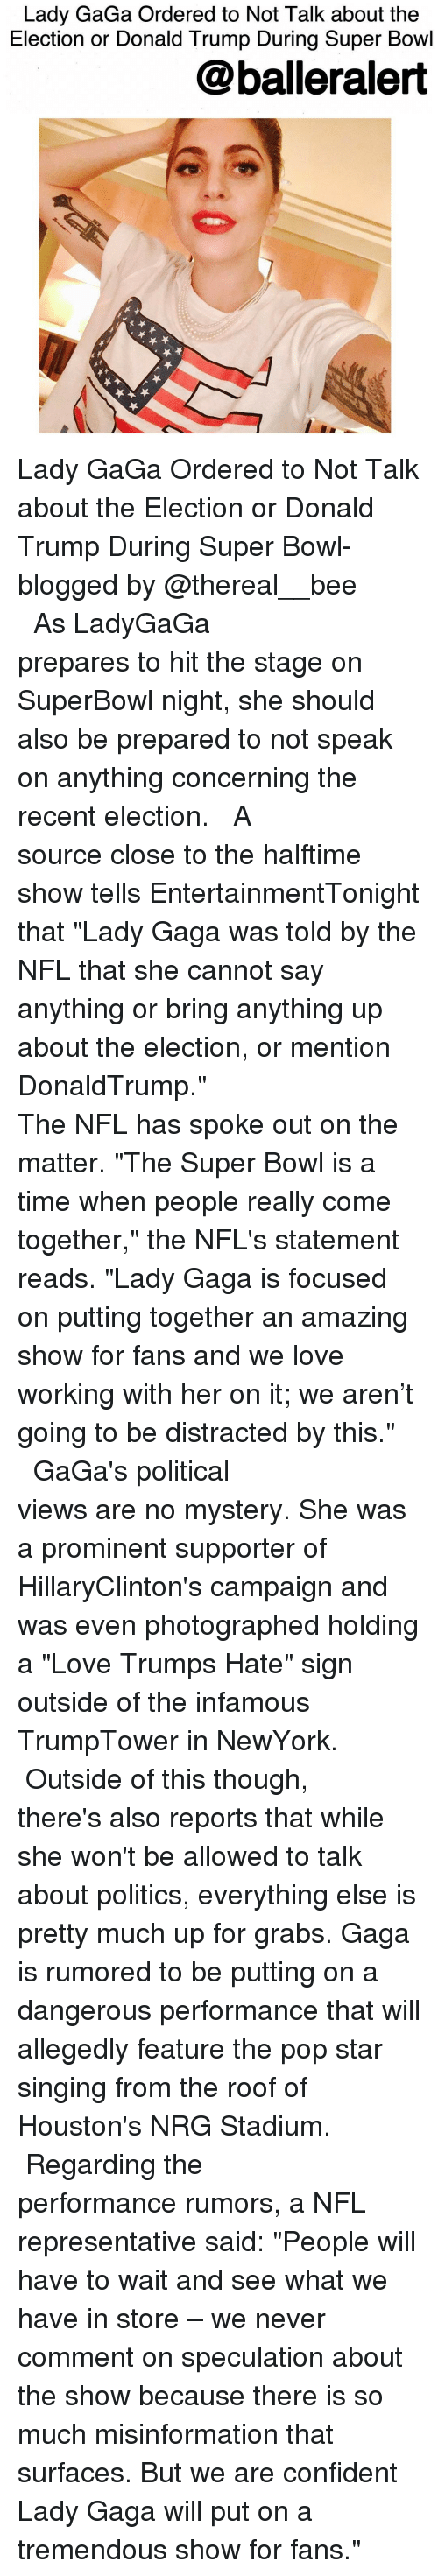 "Lady Gaga, Memes, and Super Bowl: Lady GaGa Ordered to Not Talk about the  Election or Donald Trump During Super Bowl  balleralert Lady GaGa Ordered to Not Talk about the Election or Donald Trump During Super Bowl-blogged by @thereal__bee ⠀⠀⠀⠀⠀⠀⠀⠀⠀ ⠀⠀⠀⠀⠀⠀⠀⠀⠀ As LadyGaGa prepares to hit the stage on SuperBowl night, she should also be prepared to not speak on anything concerning the recent election. ⠀⠀⠀⠀⠀⠀⠀⠀⠀ ⠀⠀⠀⠀⠀⠀⠀⠀⠀ A source close to the halftime show tells EntertainmentTonight that ""Lady Gaga was told by the NFL that she cannot say anything or bring anything up about the election, or mention DonaldTrump."" ⠀⠀⠀⠀⠀⠀⠀⠀⠀ ⠀⠀⠀⠀⠀⠀⠀⠀⠀ The NFL has spoke out on the matter. ""The Super Bowl is a time when people really come together,"" the NFL's statement reads. ""Lady Gaga is focused on putting together an amazing show for fans and we love working with her on it; we aren't going to be distracted by this."" ⠀⠀⠀⠀⠀⠀⠀⠀⠀ ⠀⠀⠀⠀⠀⠀⠀⠀⠀ GaGa's political views are no mystery. She was a prominent supporter of HillaryClinton's campaign and was even photographed holding a ""Love Trumps Hate"" sign outside of the infamous TrumpTower in NewYork. ⠀⠀⠀⠀⠀⠀⠀⠀⠀ ⠀⠀⠀⠀⠀⠀⠀⠀⠀ Outside of this though, there's also reports that while she won't be allowed to talk about politics, everything else is pretty much up for grabs. Gaga is rumored to be putting on a dangerous performance that will allegedly feature the pop star singing from the roof of Houston's NRG Stadium. ⠀⠀⠀⠀⠀⠀⠀⠀⠀ ⠀⠀⠀⠀⠀⠀⠀⠀⠀ Regarding the performance rumors, a NFL representative said: ""People will have to wait and see what we have in store – we never comment on speculation about the show because there is so much misinformation that surfaces. But we are confident Lady Gaga will put on a tremendous show for fans."""